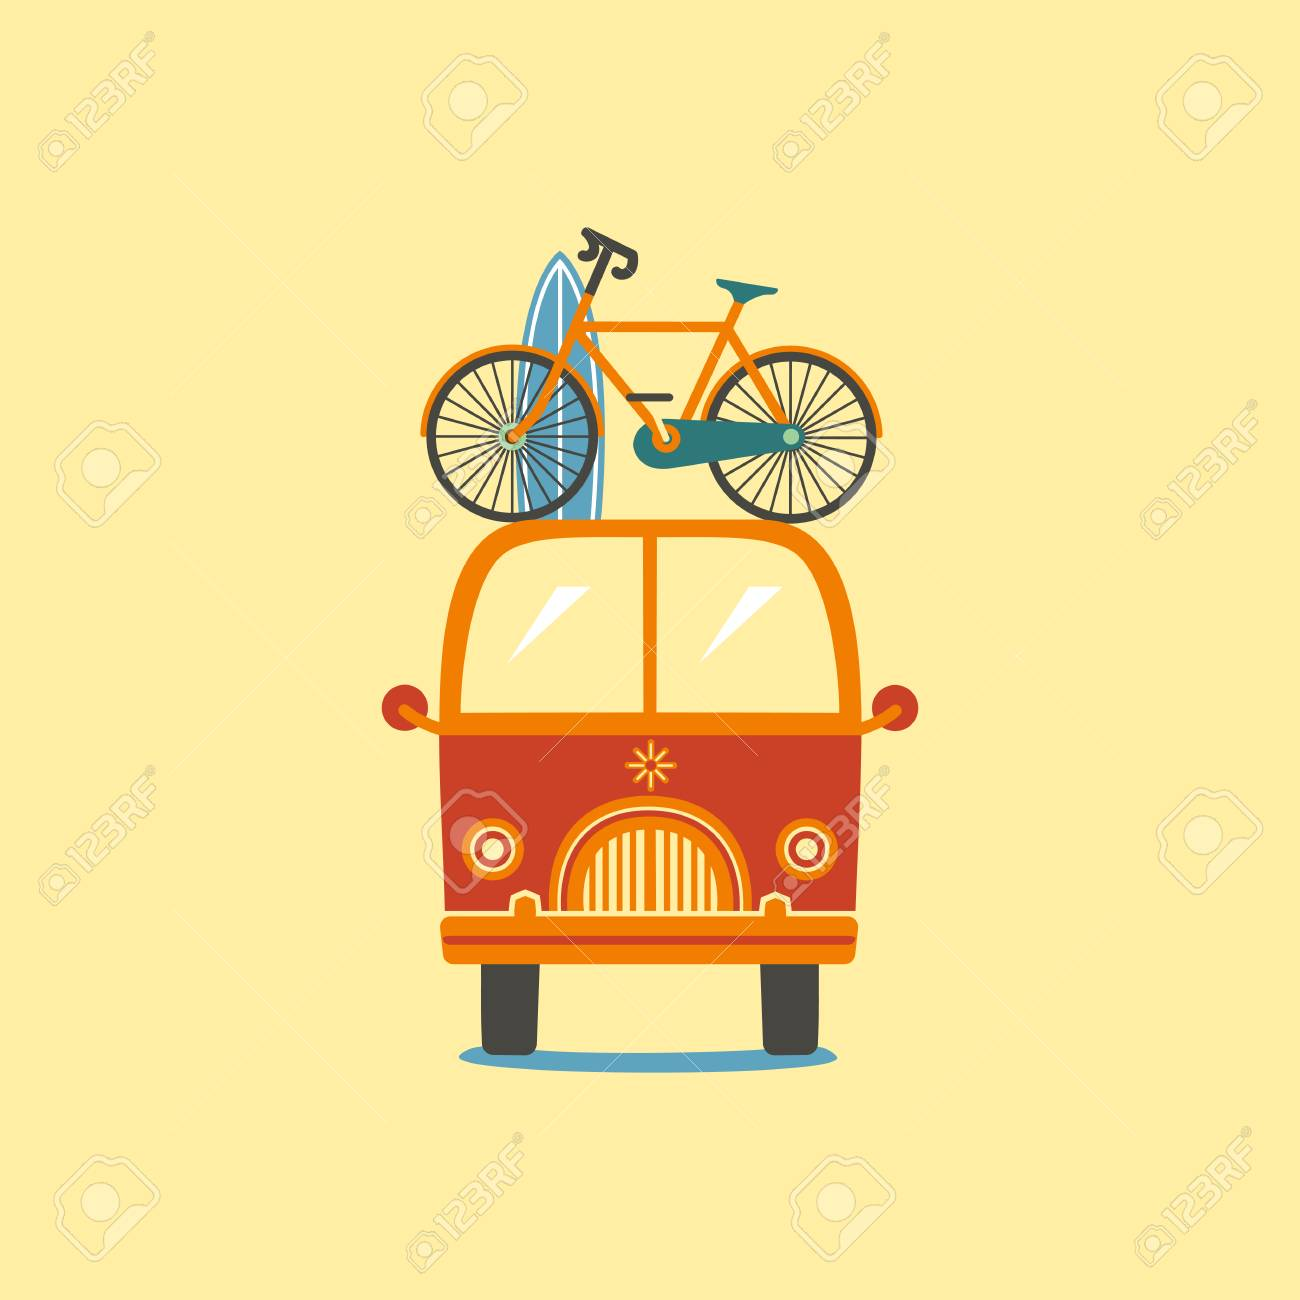 dce900f6bd Front view of an orange van with bicycle and surfboard on top. Stock Vector  -